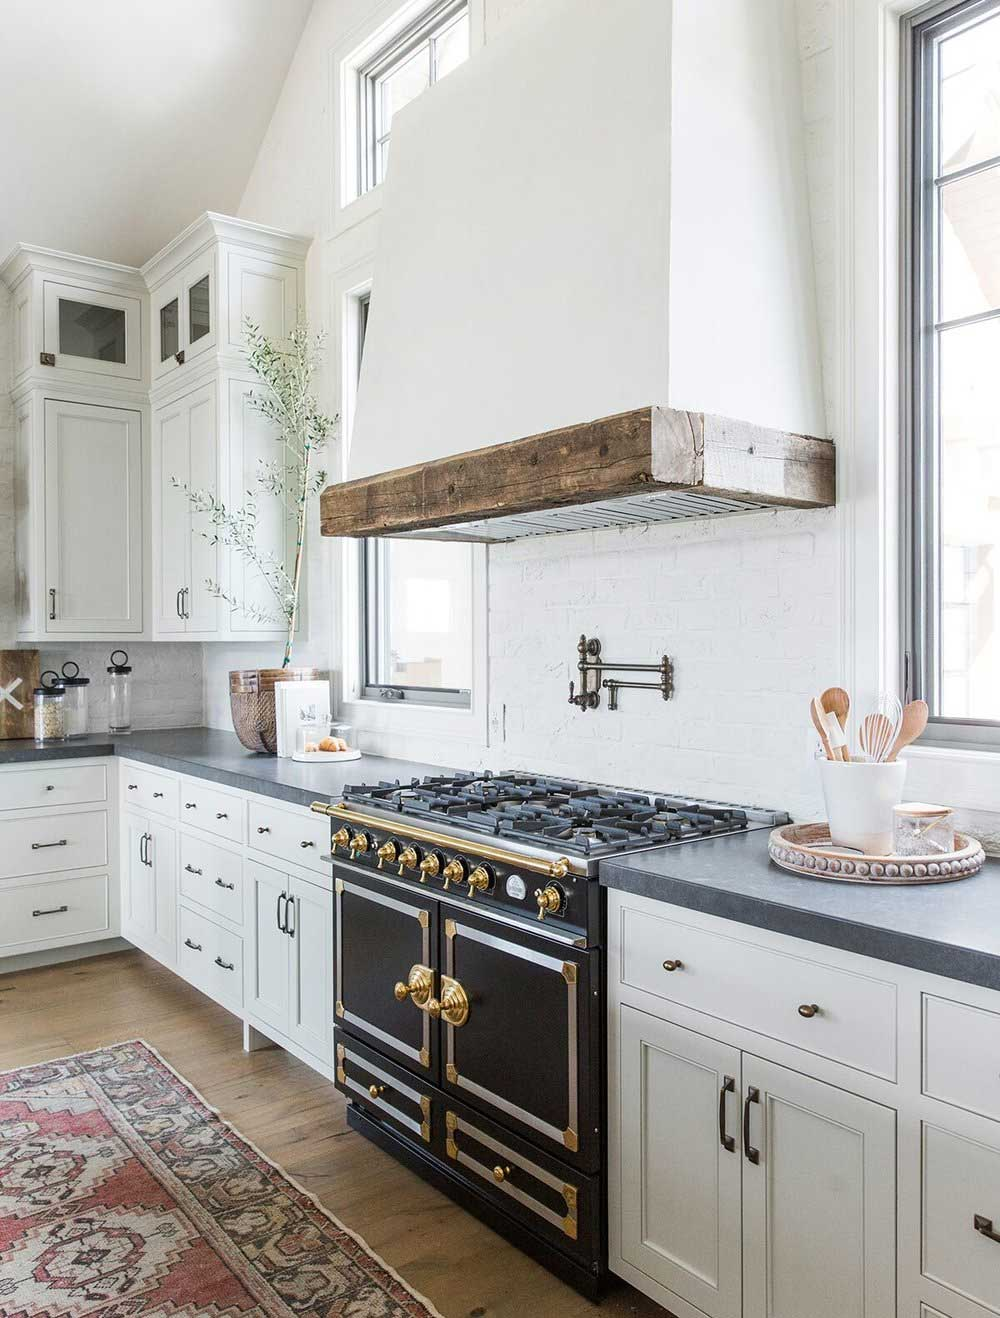 Choosing The Right Range Hood For A Kitchen Plank And Pillow